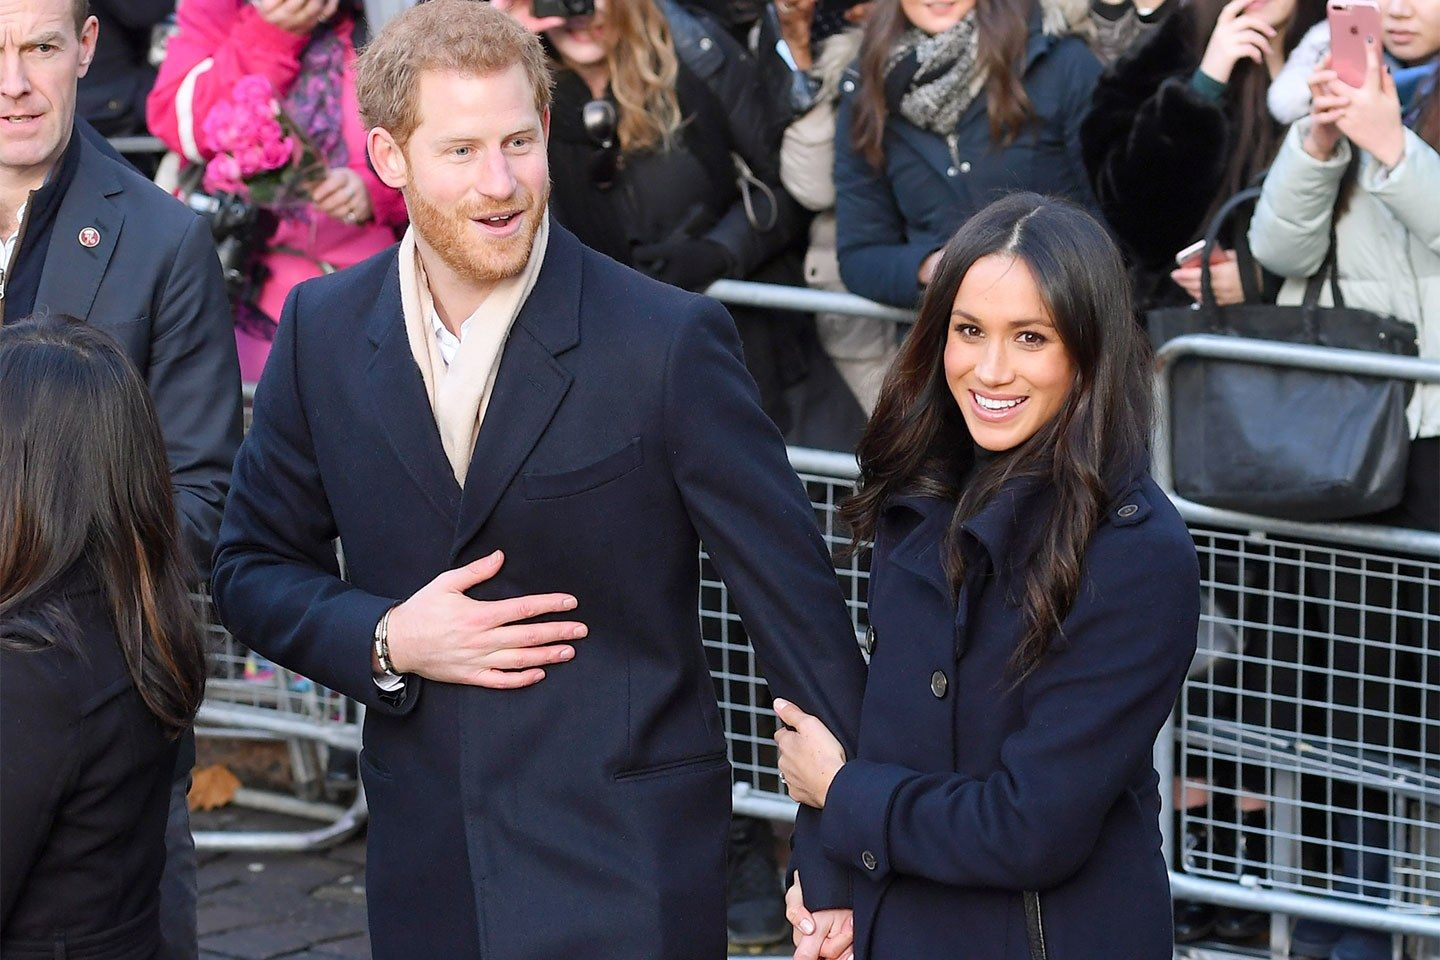 What Punters Are Betting On For Prince Harry And Meghan Markle's Wedding